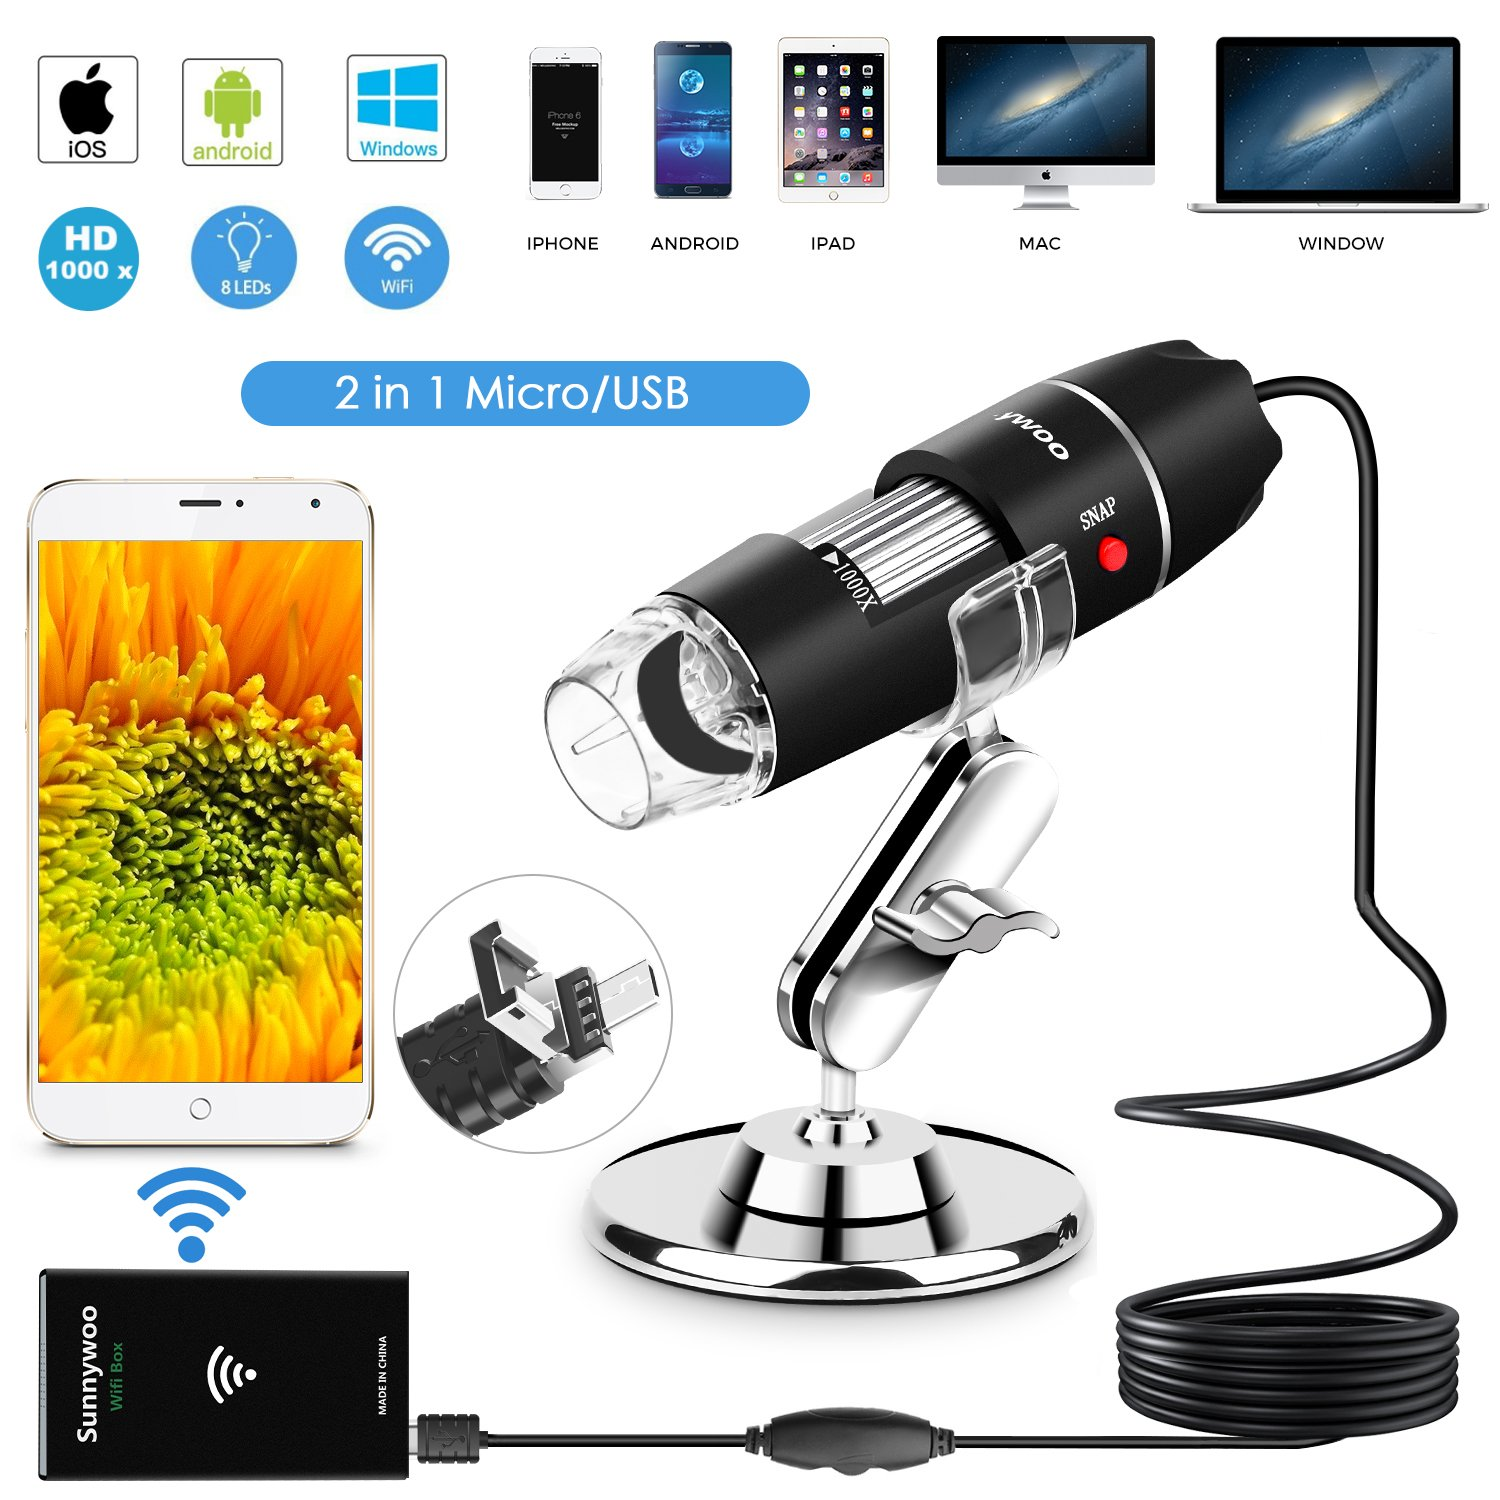 Wifi USB Microscope 1000x Digital Handheld Microscope Wifi Endoscope 8 LED with 2 in 1 Micro USB Support for Android Smartphone, iPhone, Tablet, Widows by Sunnywoo by Sunnywoo